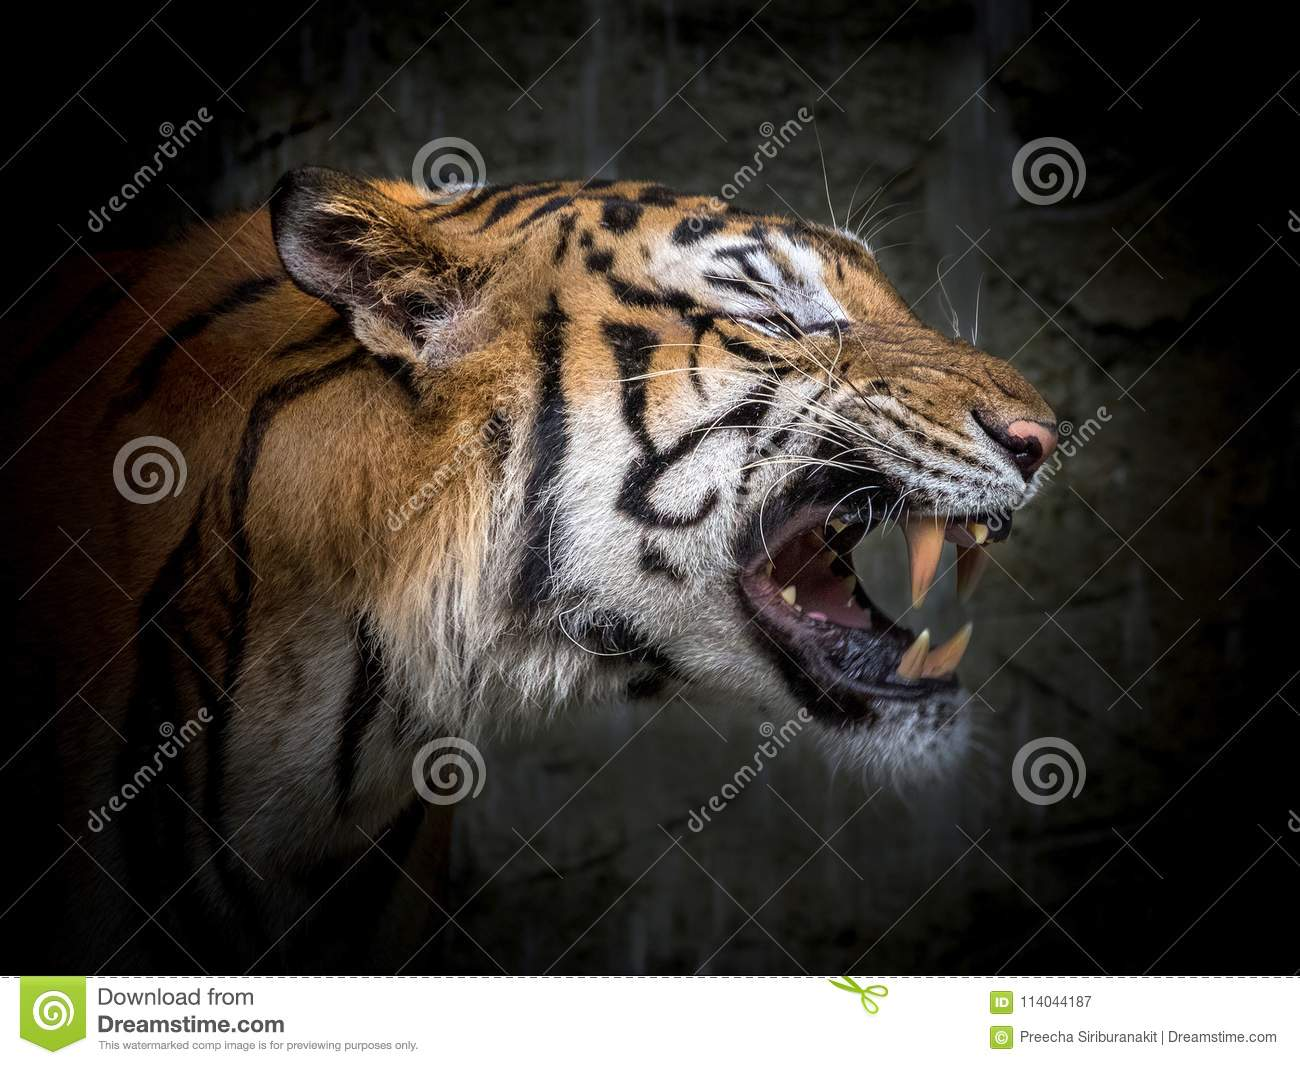 The face of Asian tiger.